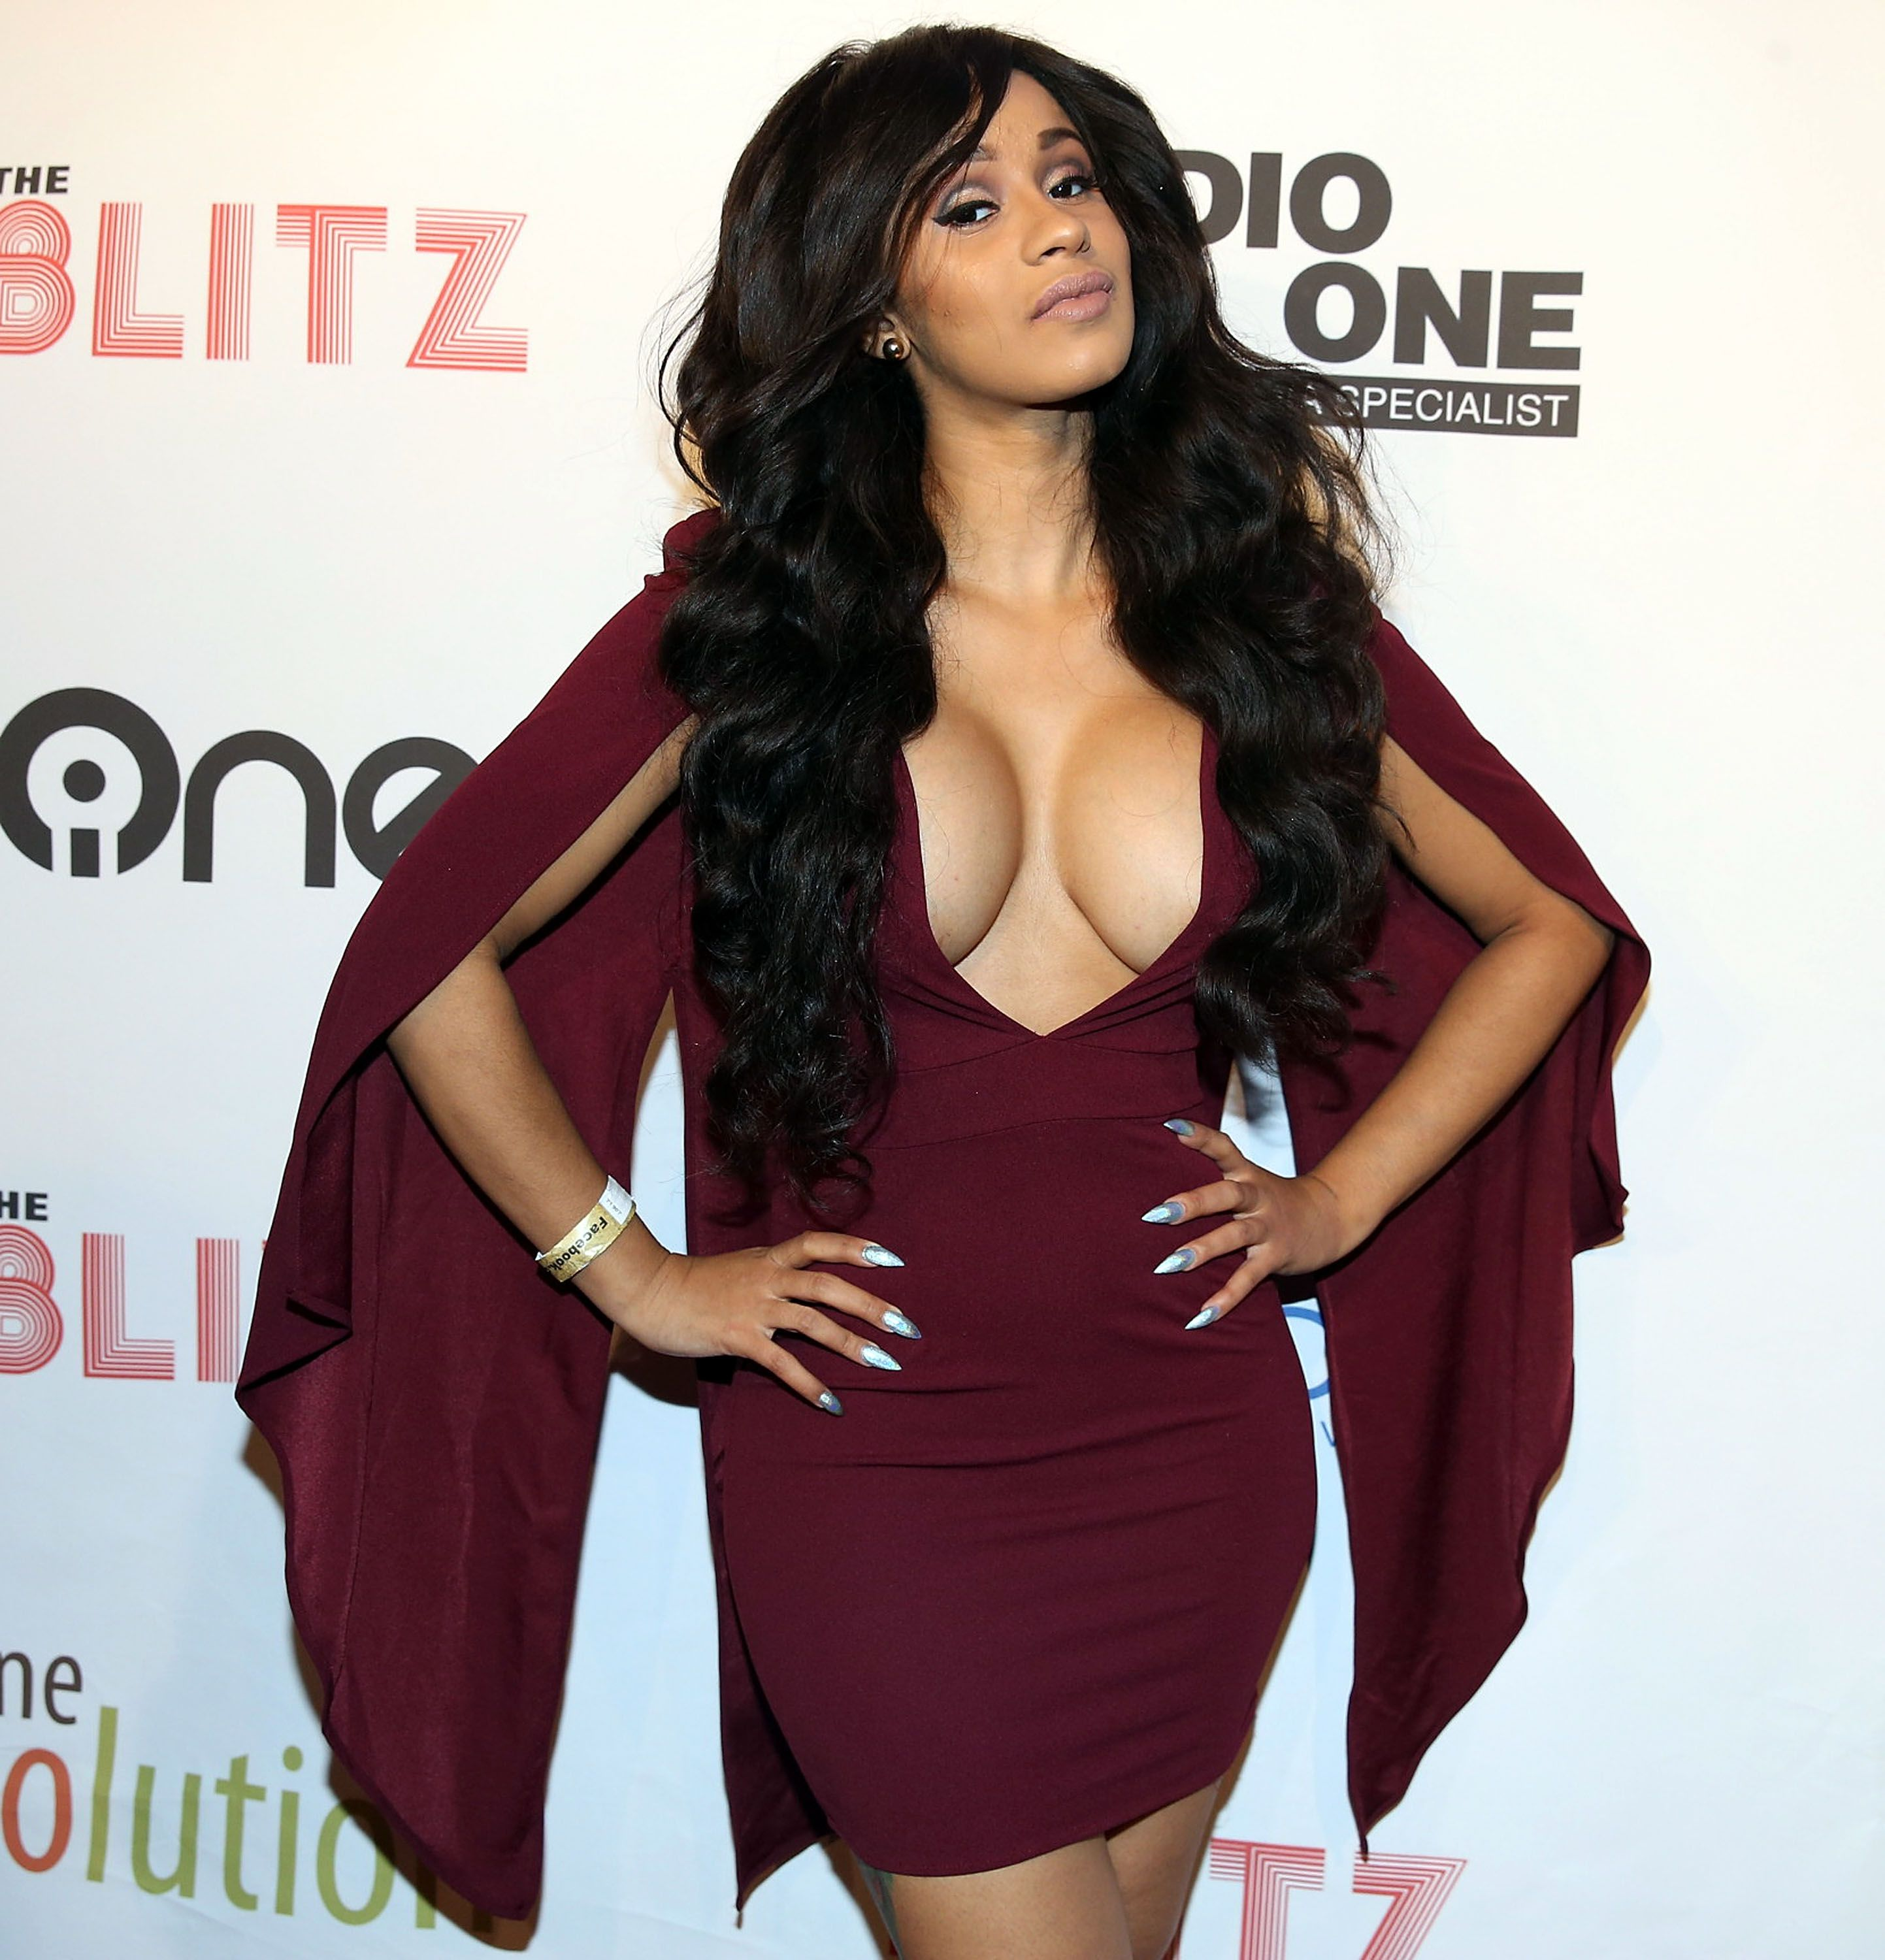 Hot Cardi B naked (64 photos), Topless, Leaked, Instagram, braless 2018